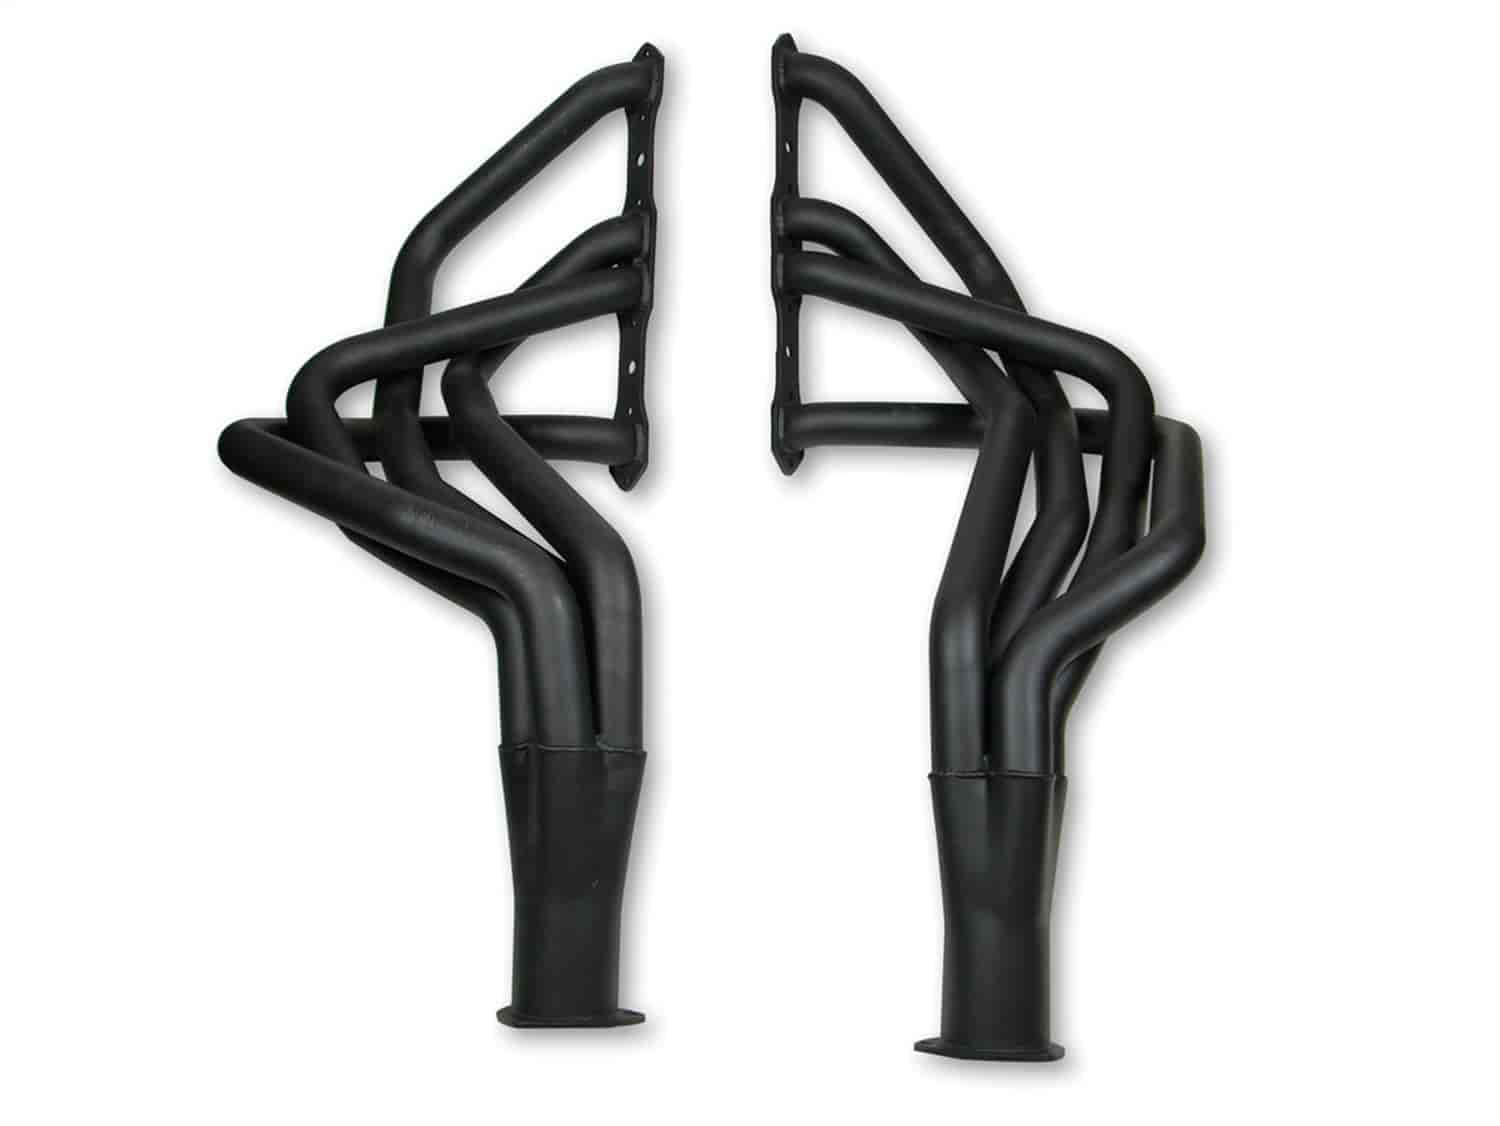 Hooker Headers 5215 - Hooker Headers Super Competition Headers MOPAR Car